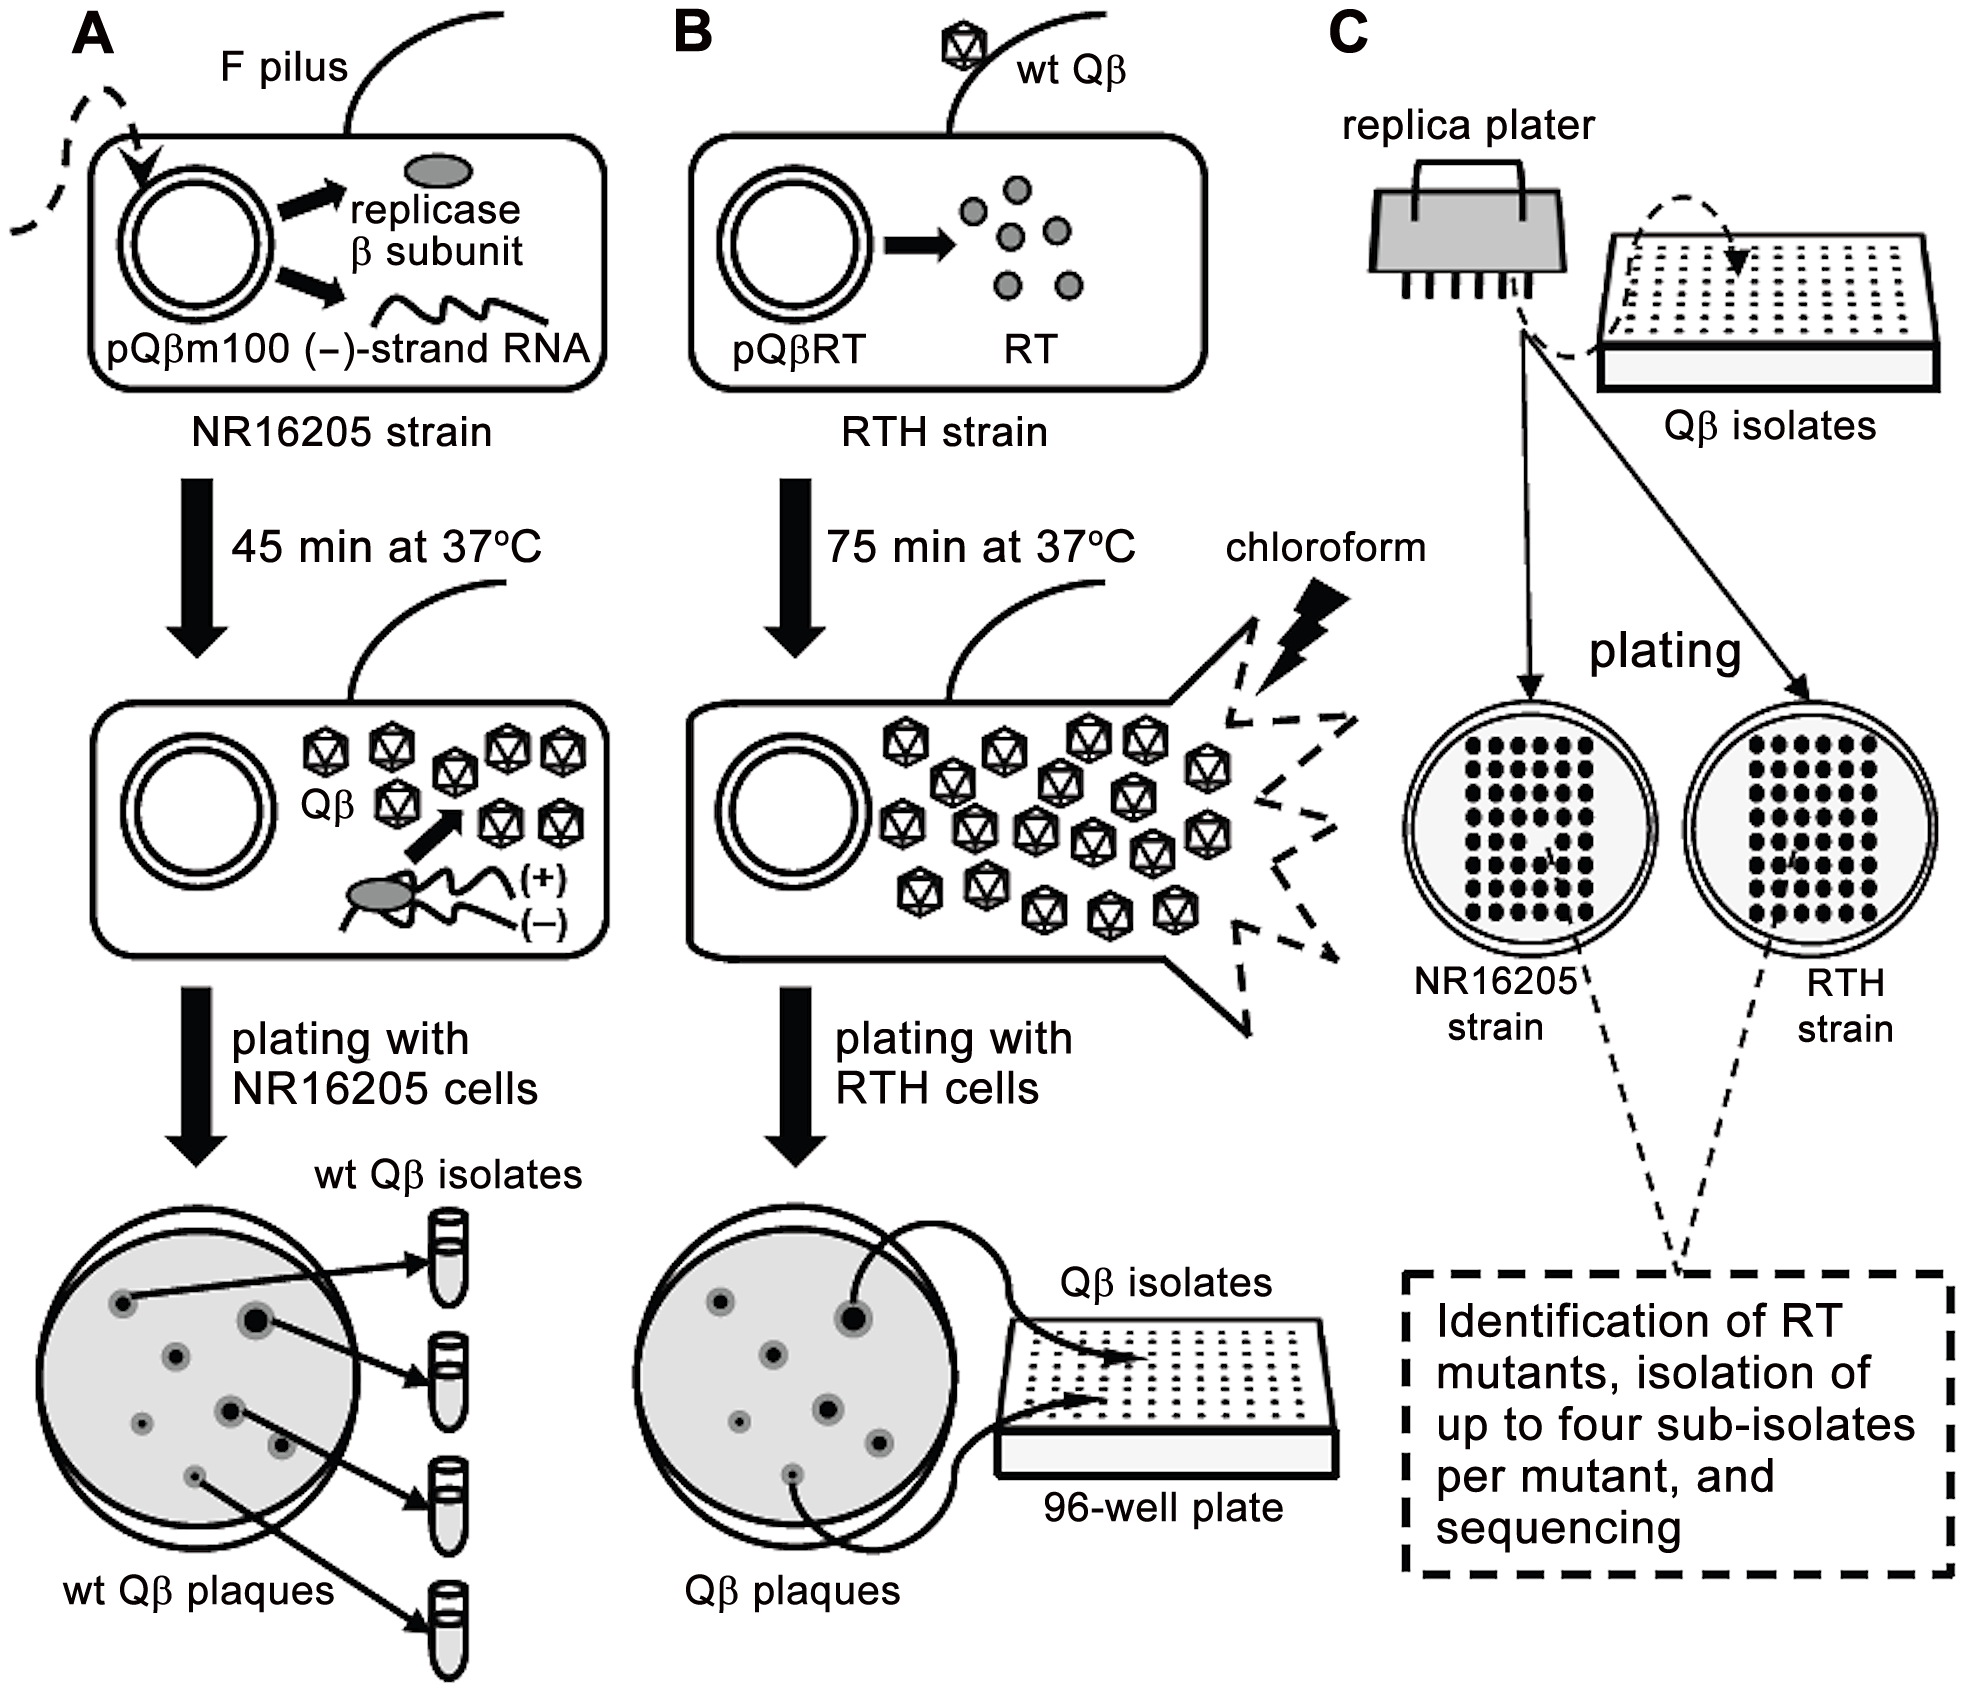 Schematic representation of the experimental system used to isolate <i>RT</i> mutants.